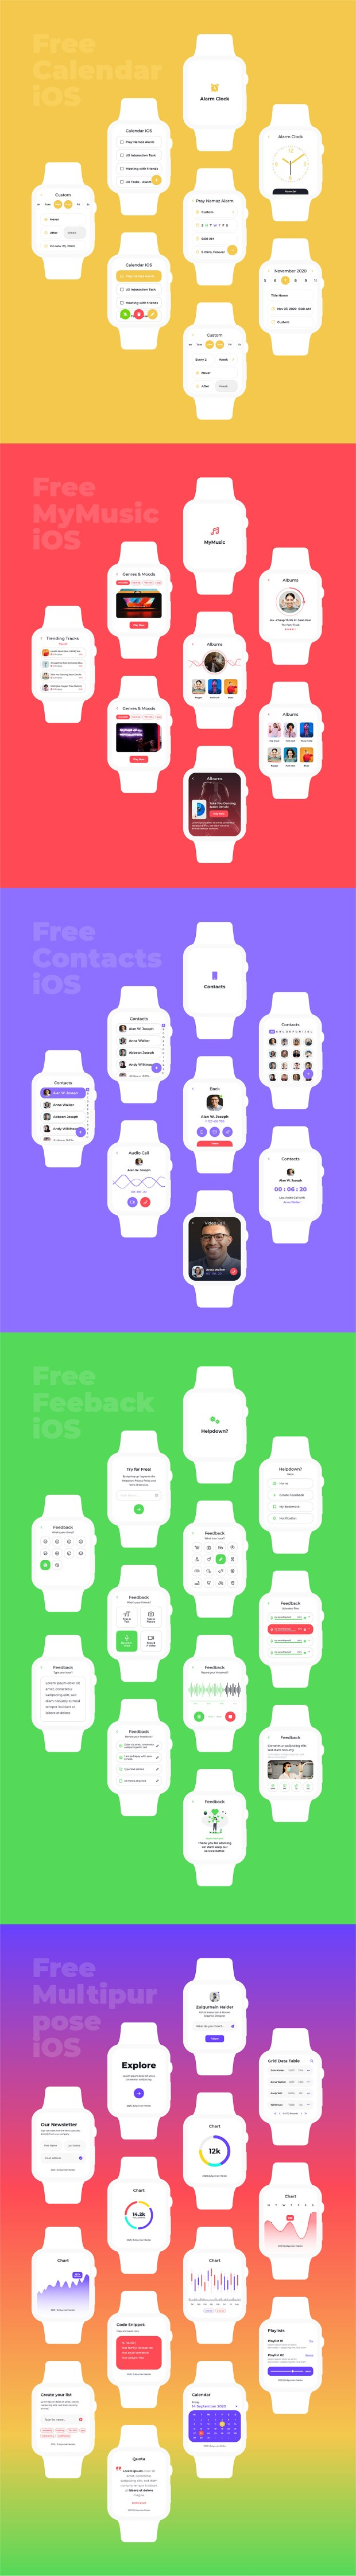 Apple Watch iOS Collection Free UI Kit